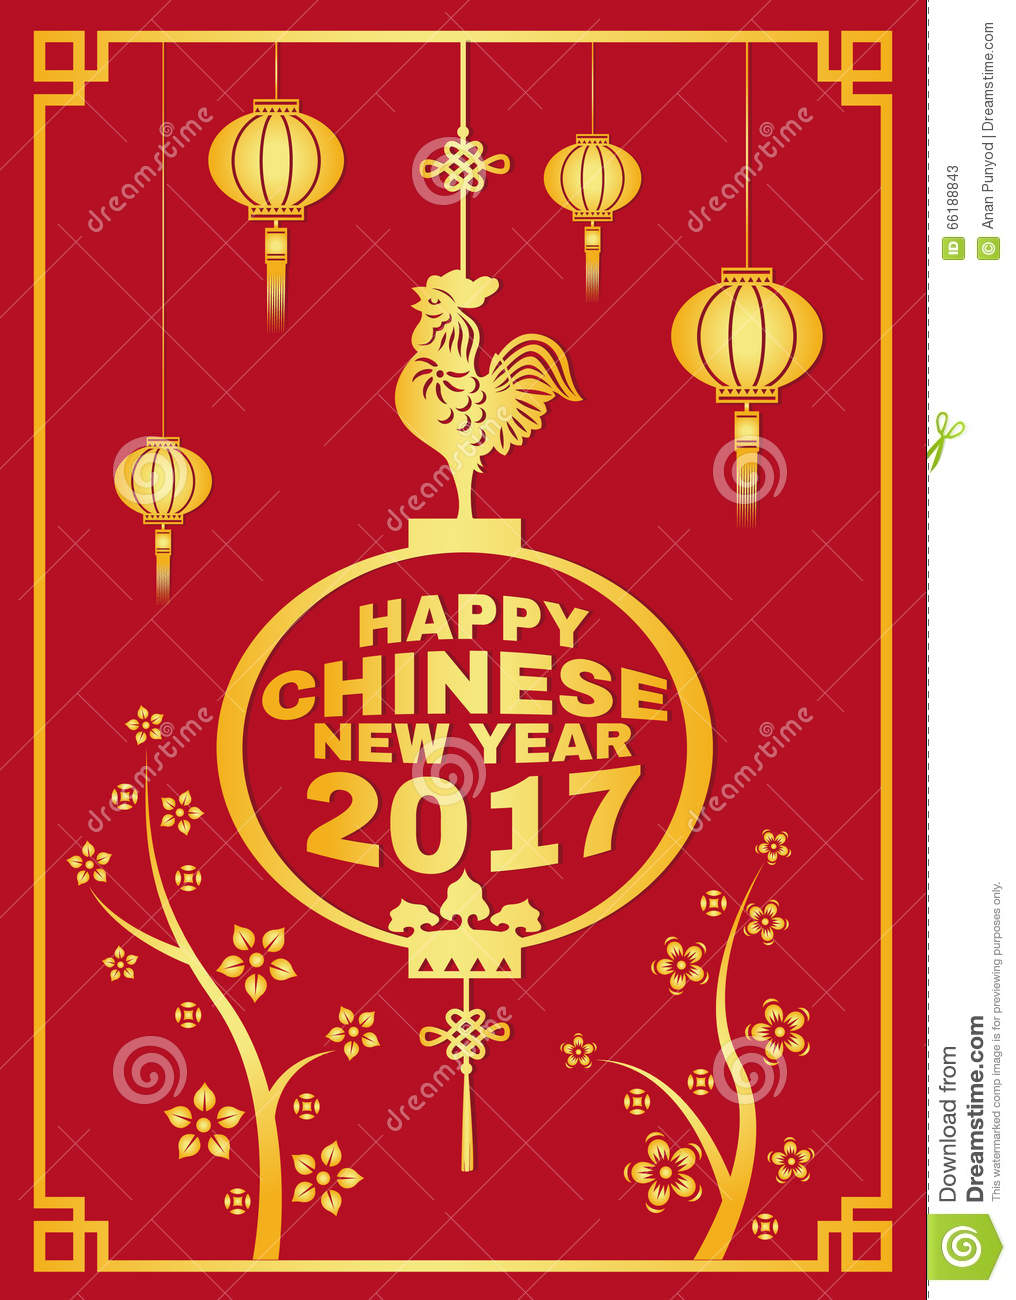 happy chinese new year 2017 card is lanterns and chicken symbols and flower